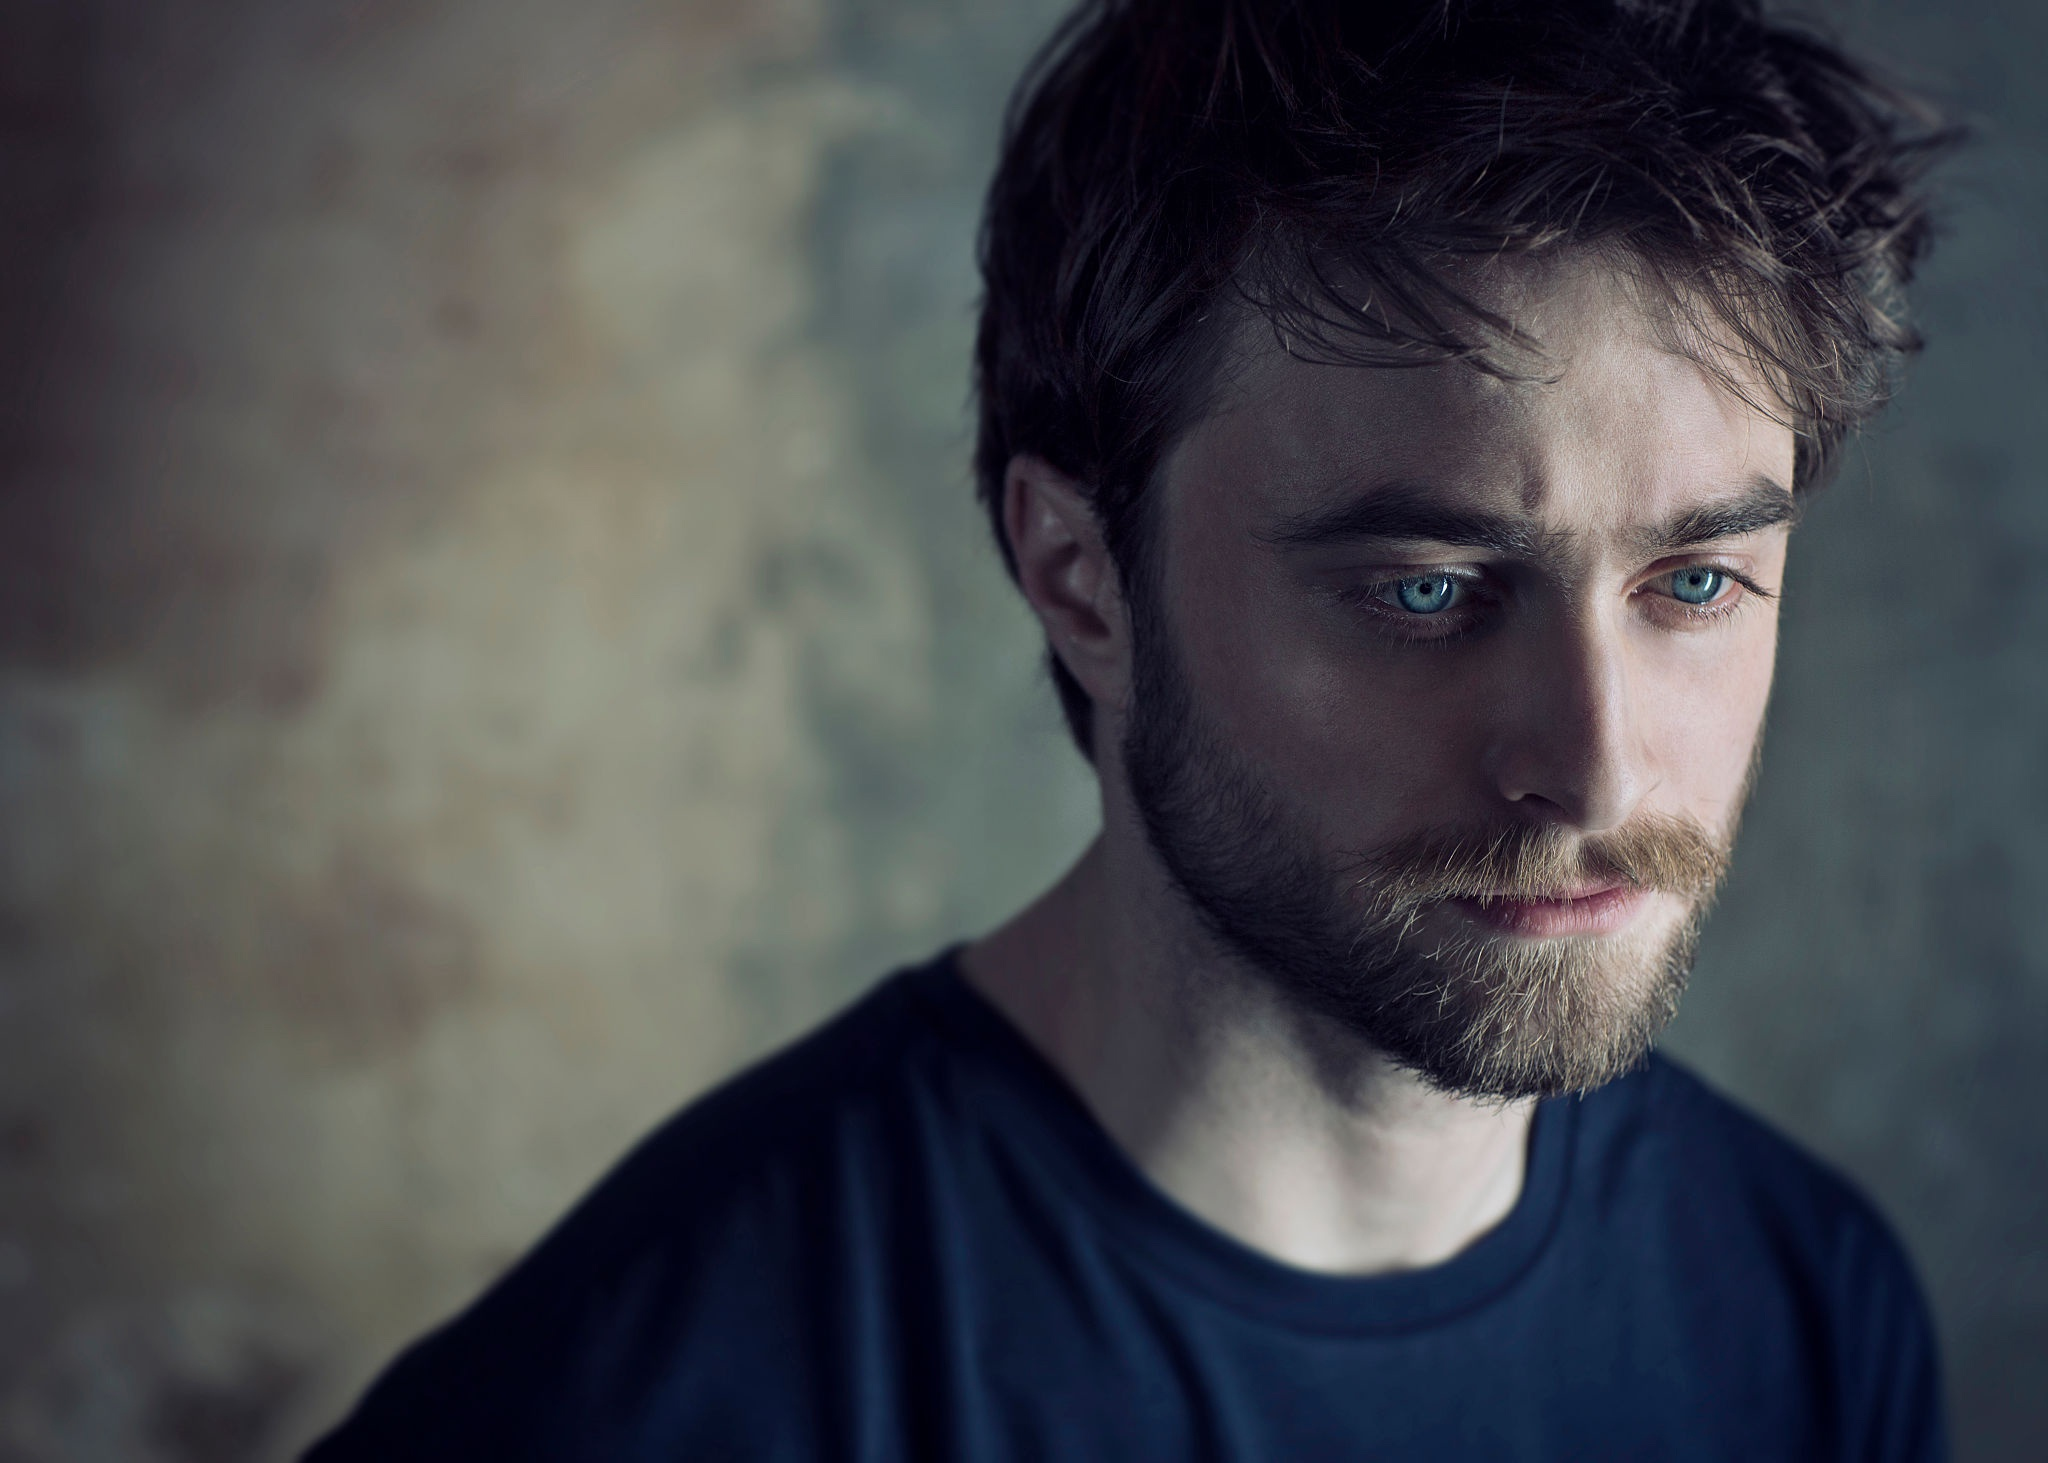 daniel radcliffe full hd wallpaper and background image | 2048x1463